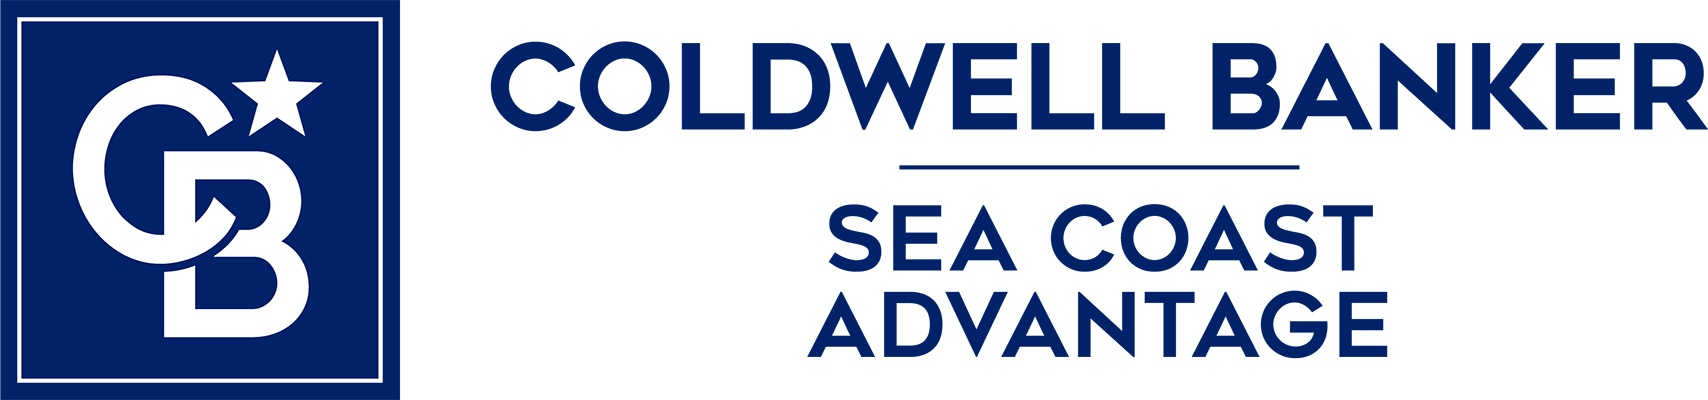 Cyrenda Smith - Coldwell Banker Sea Coast Advantage Realty